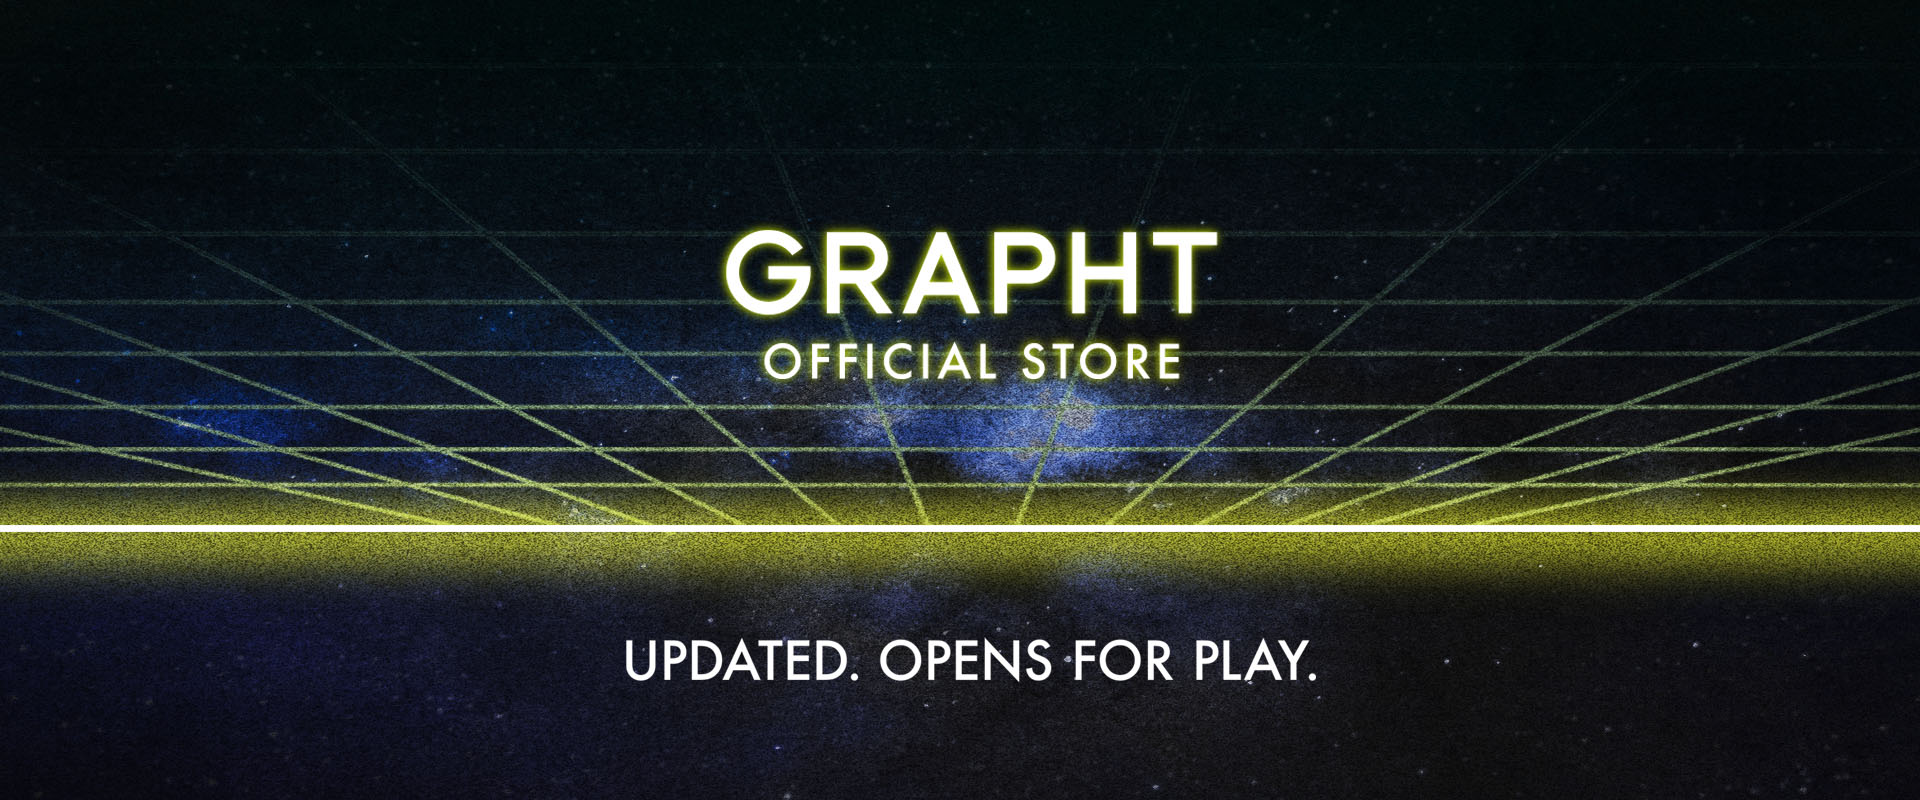 GRAPHT「UPDATED OPENS FOR PLAY」